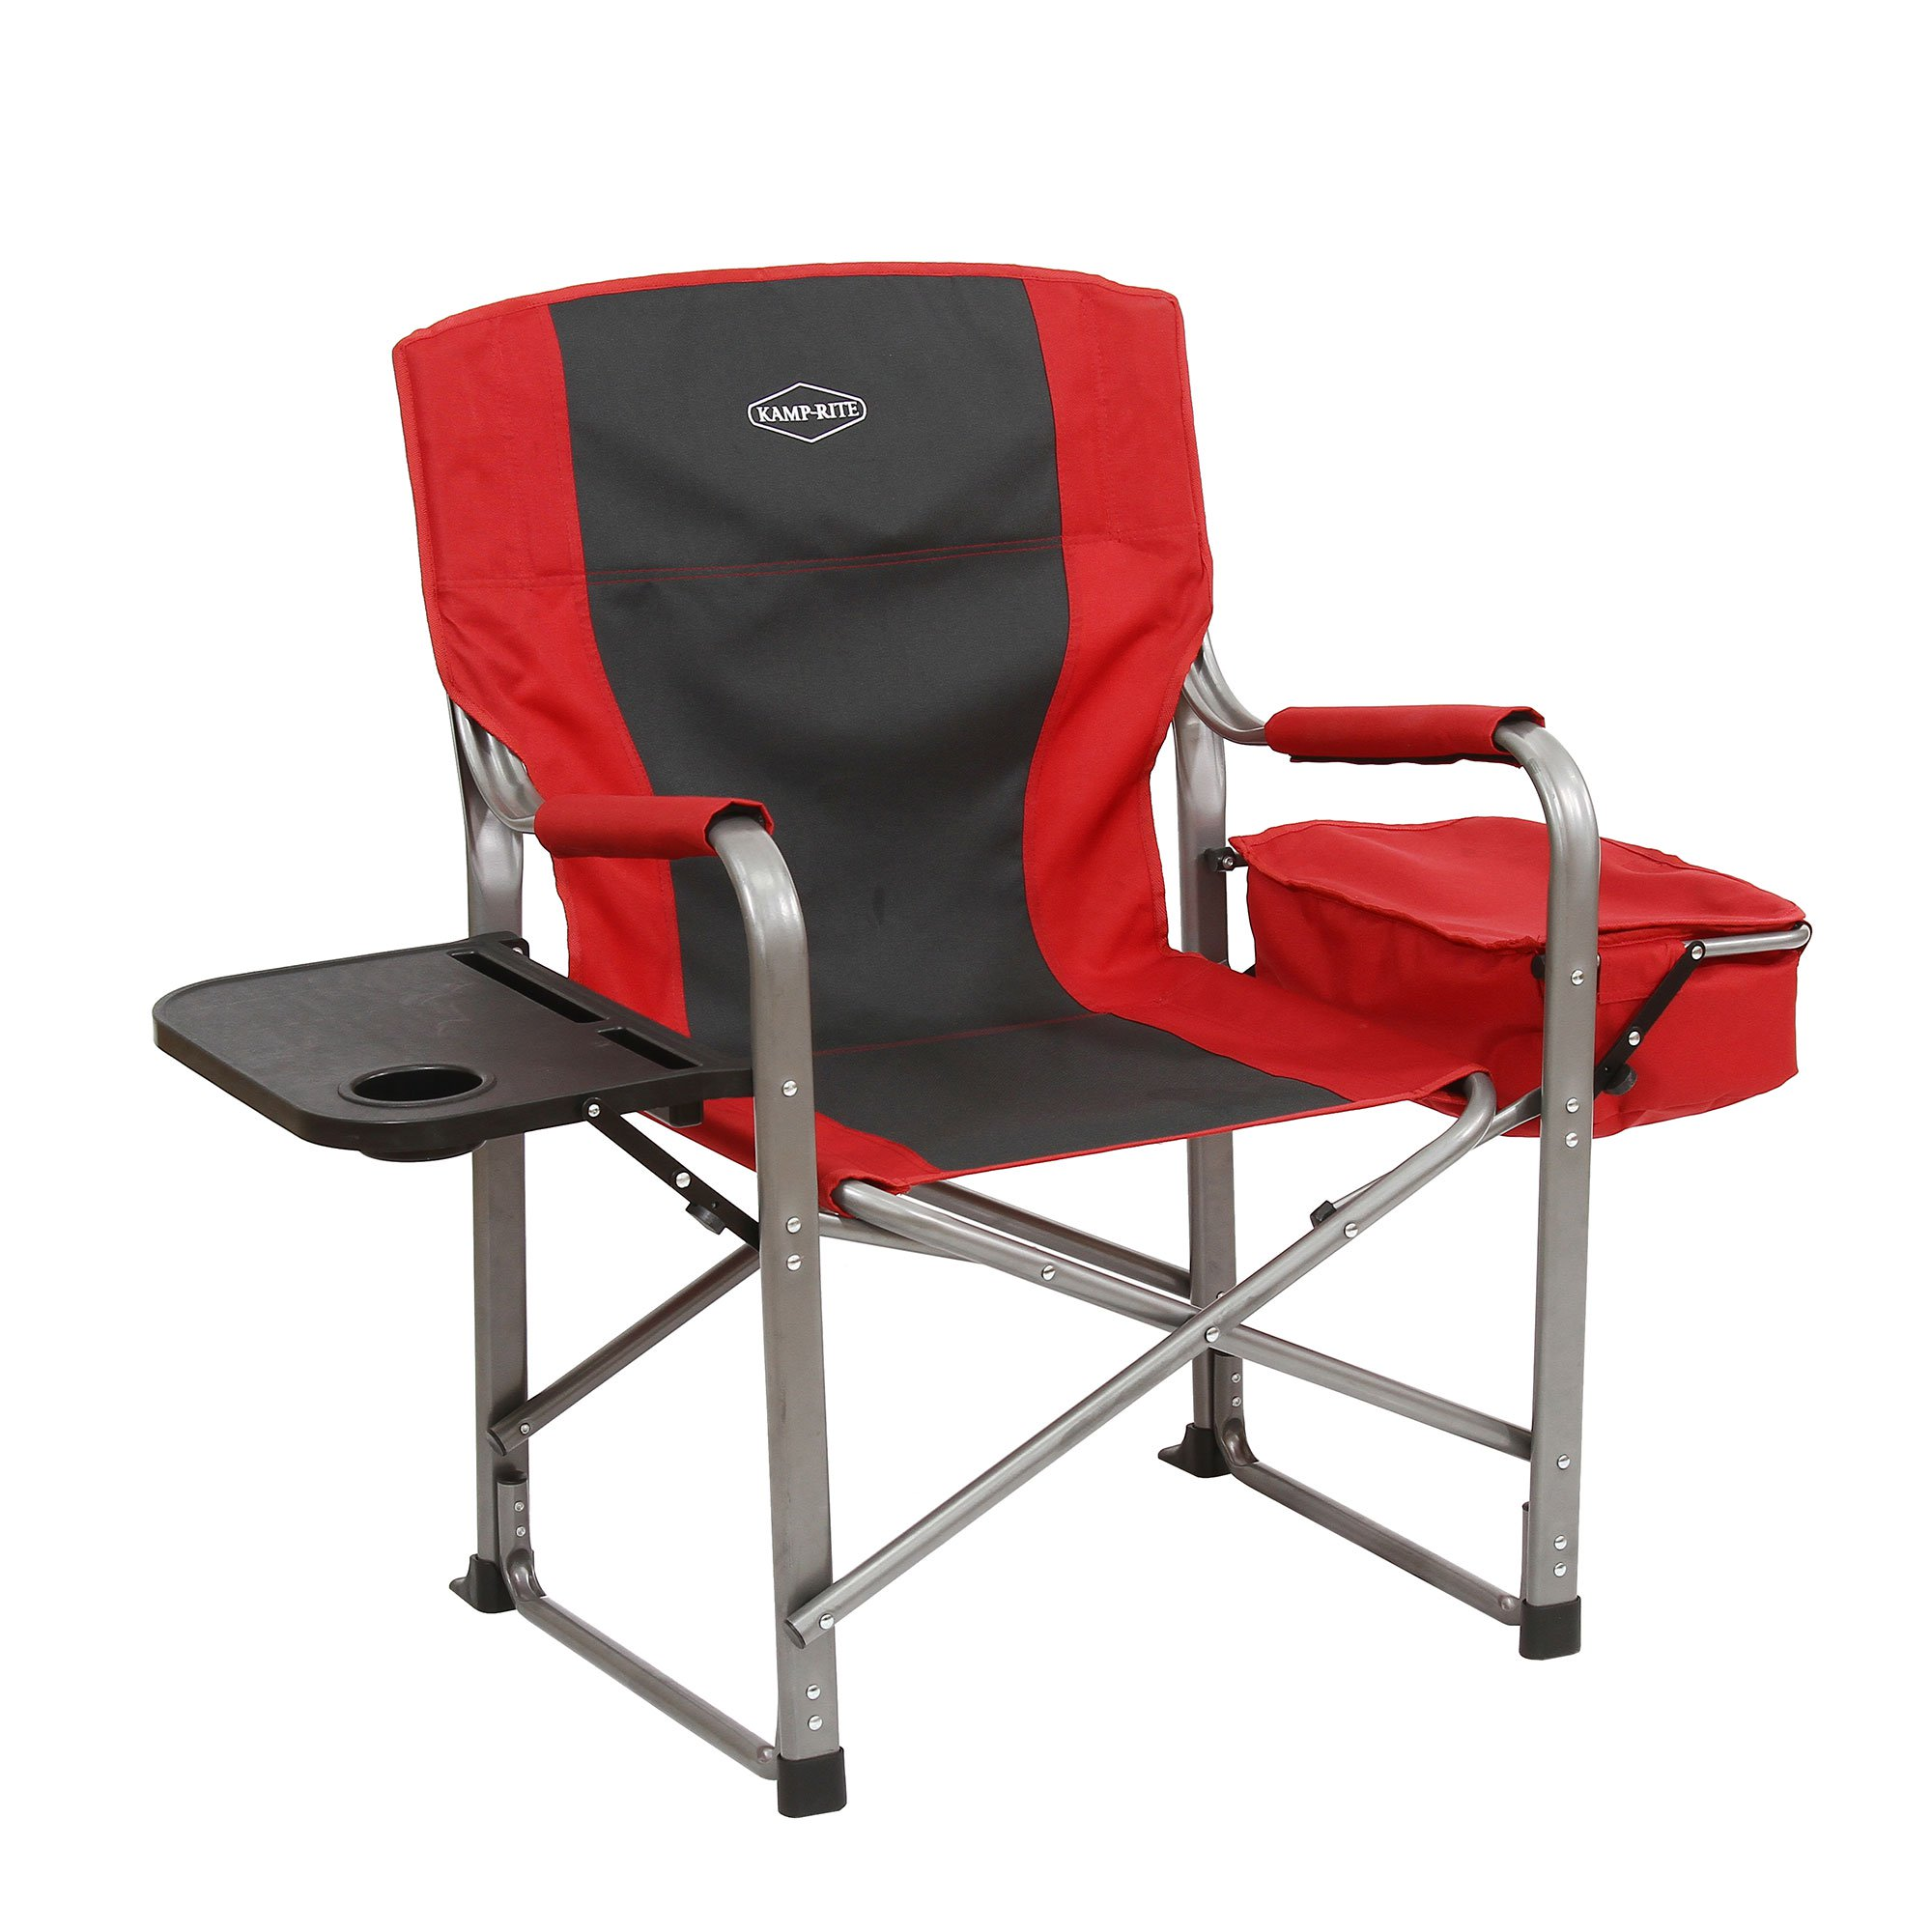 details about kamp rite outdoor camp folding director chair with side table cooler red resource ashx piece nesting set bedside lamps outside patio cover kenroy home accent chairs